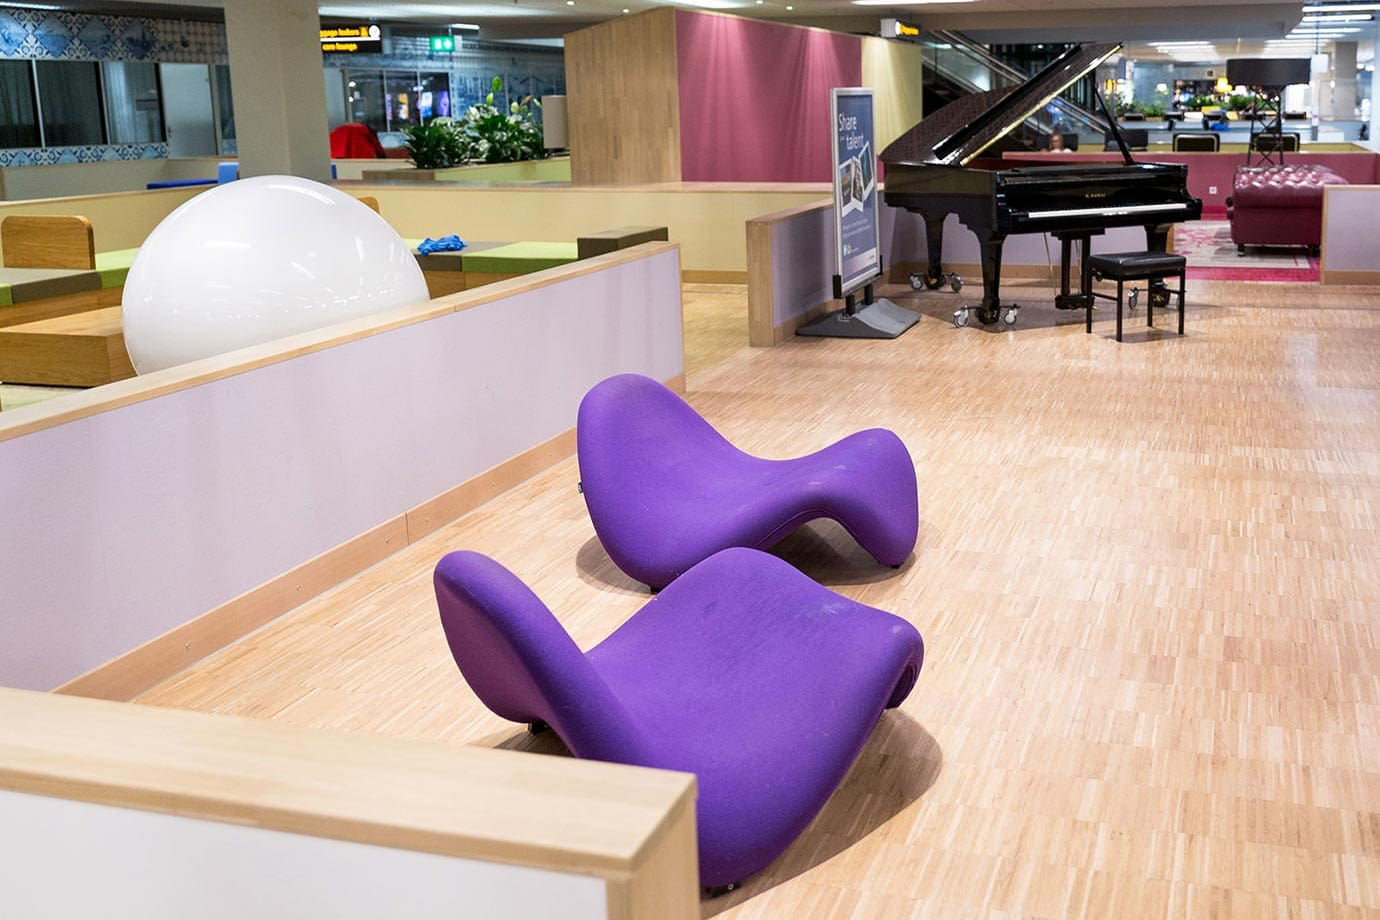 Piano at Schiphol Airport